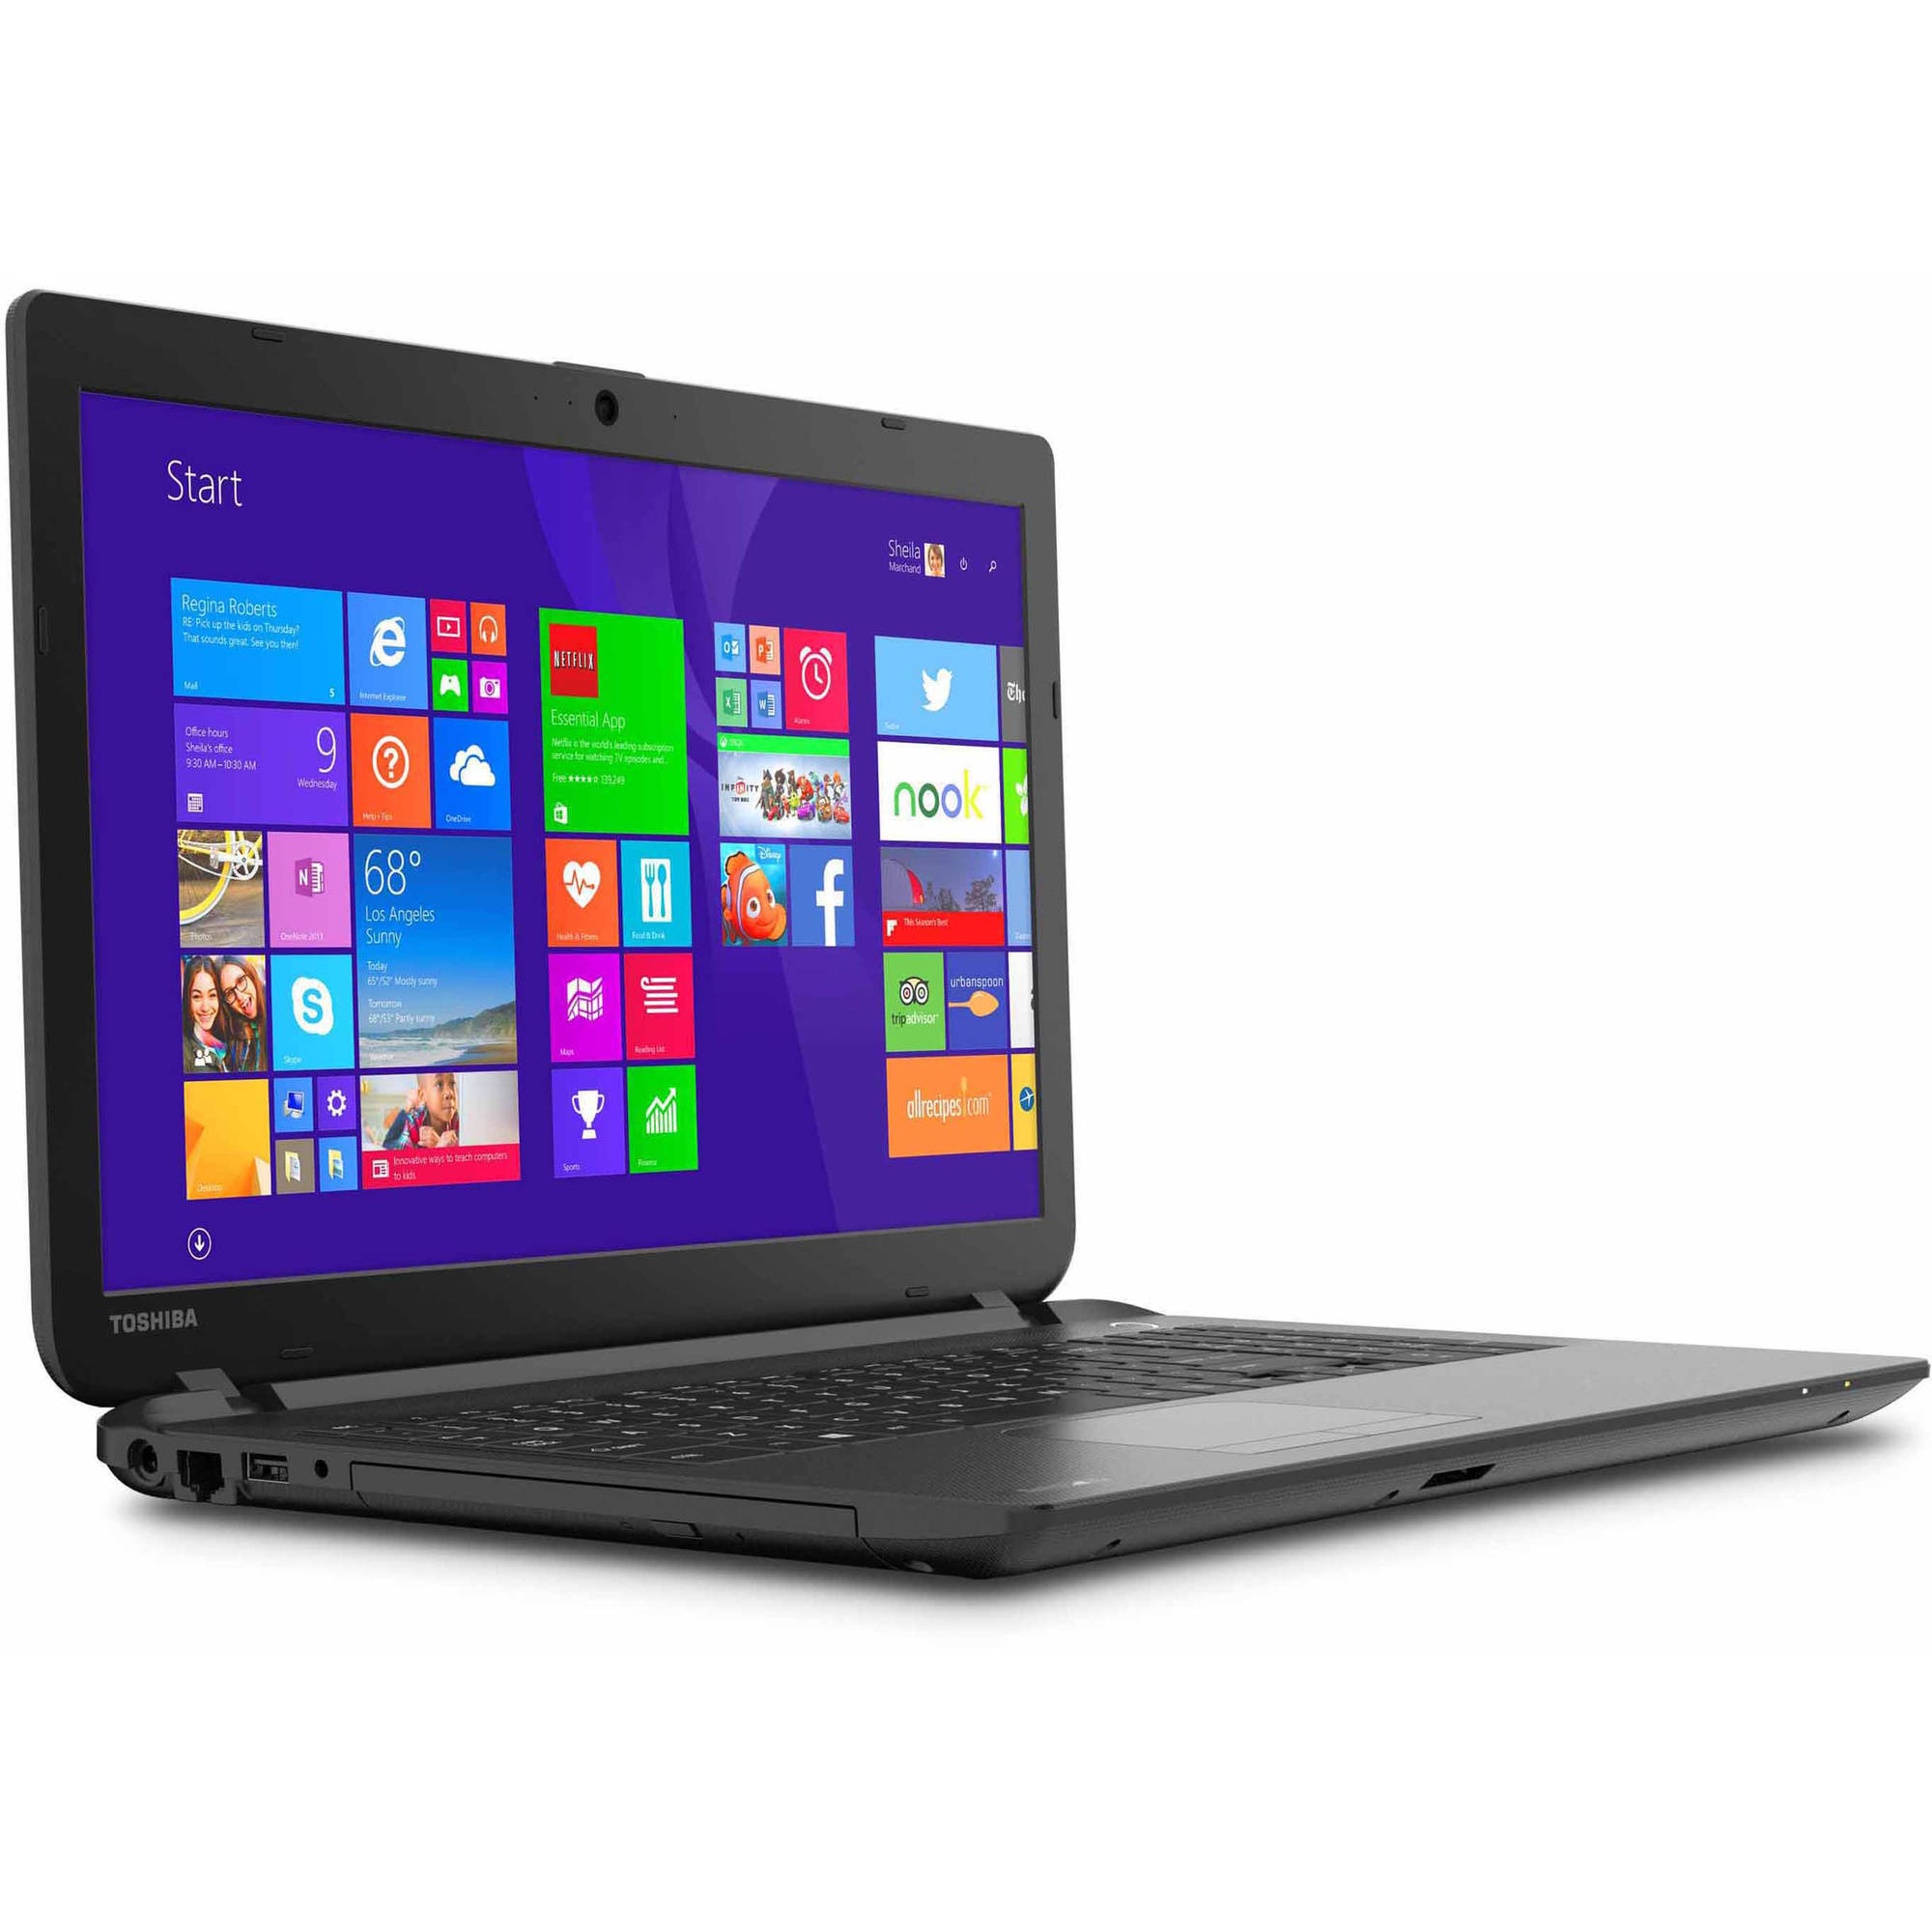 Toshiba Black 15.6 Satellite C55-B5240 Laptop PC with Intel Celeron N2840 Processor, DVD Drive, 4GB Memory, 500GB Hard Drive and